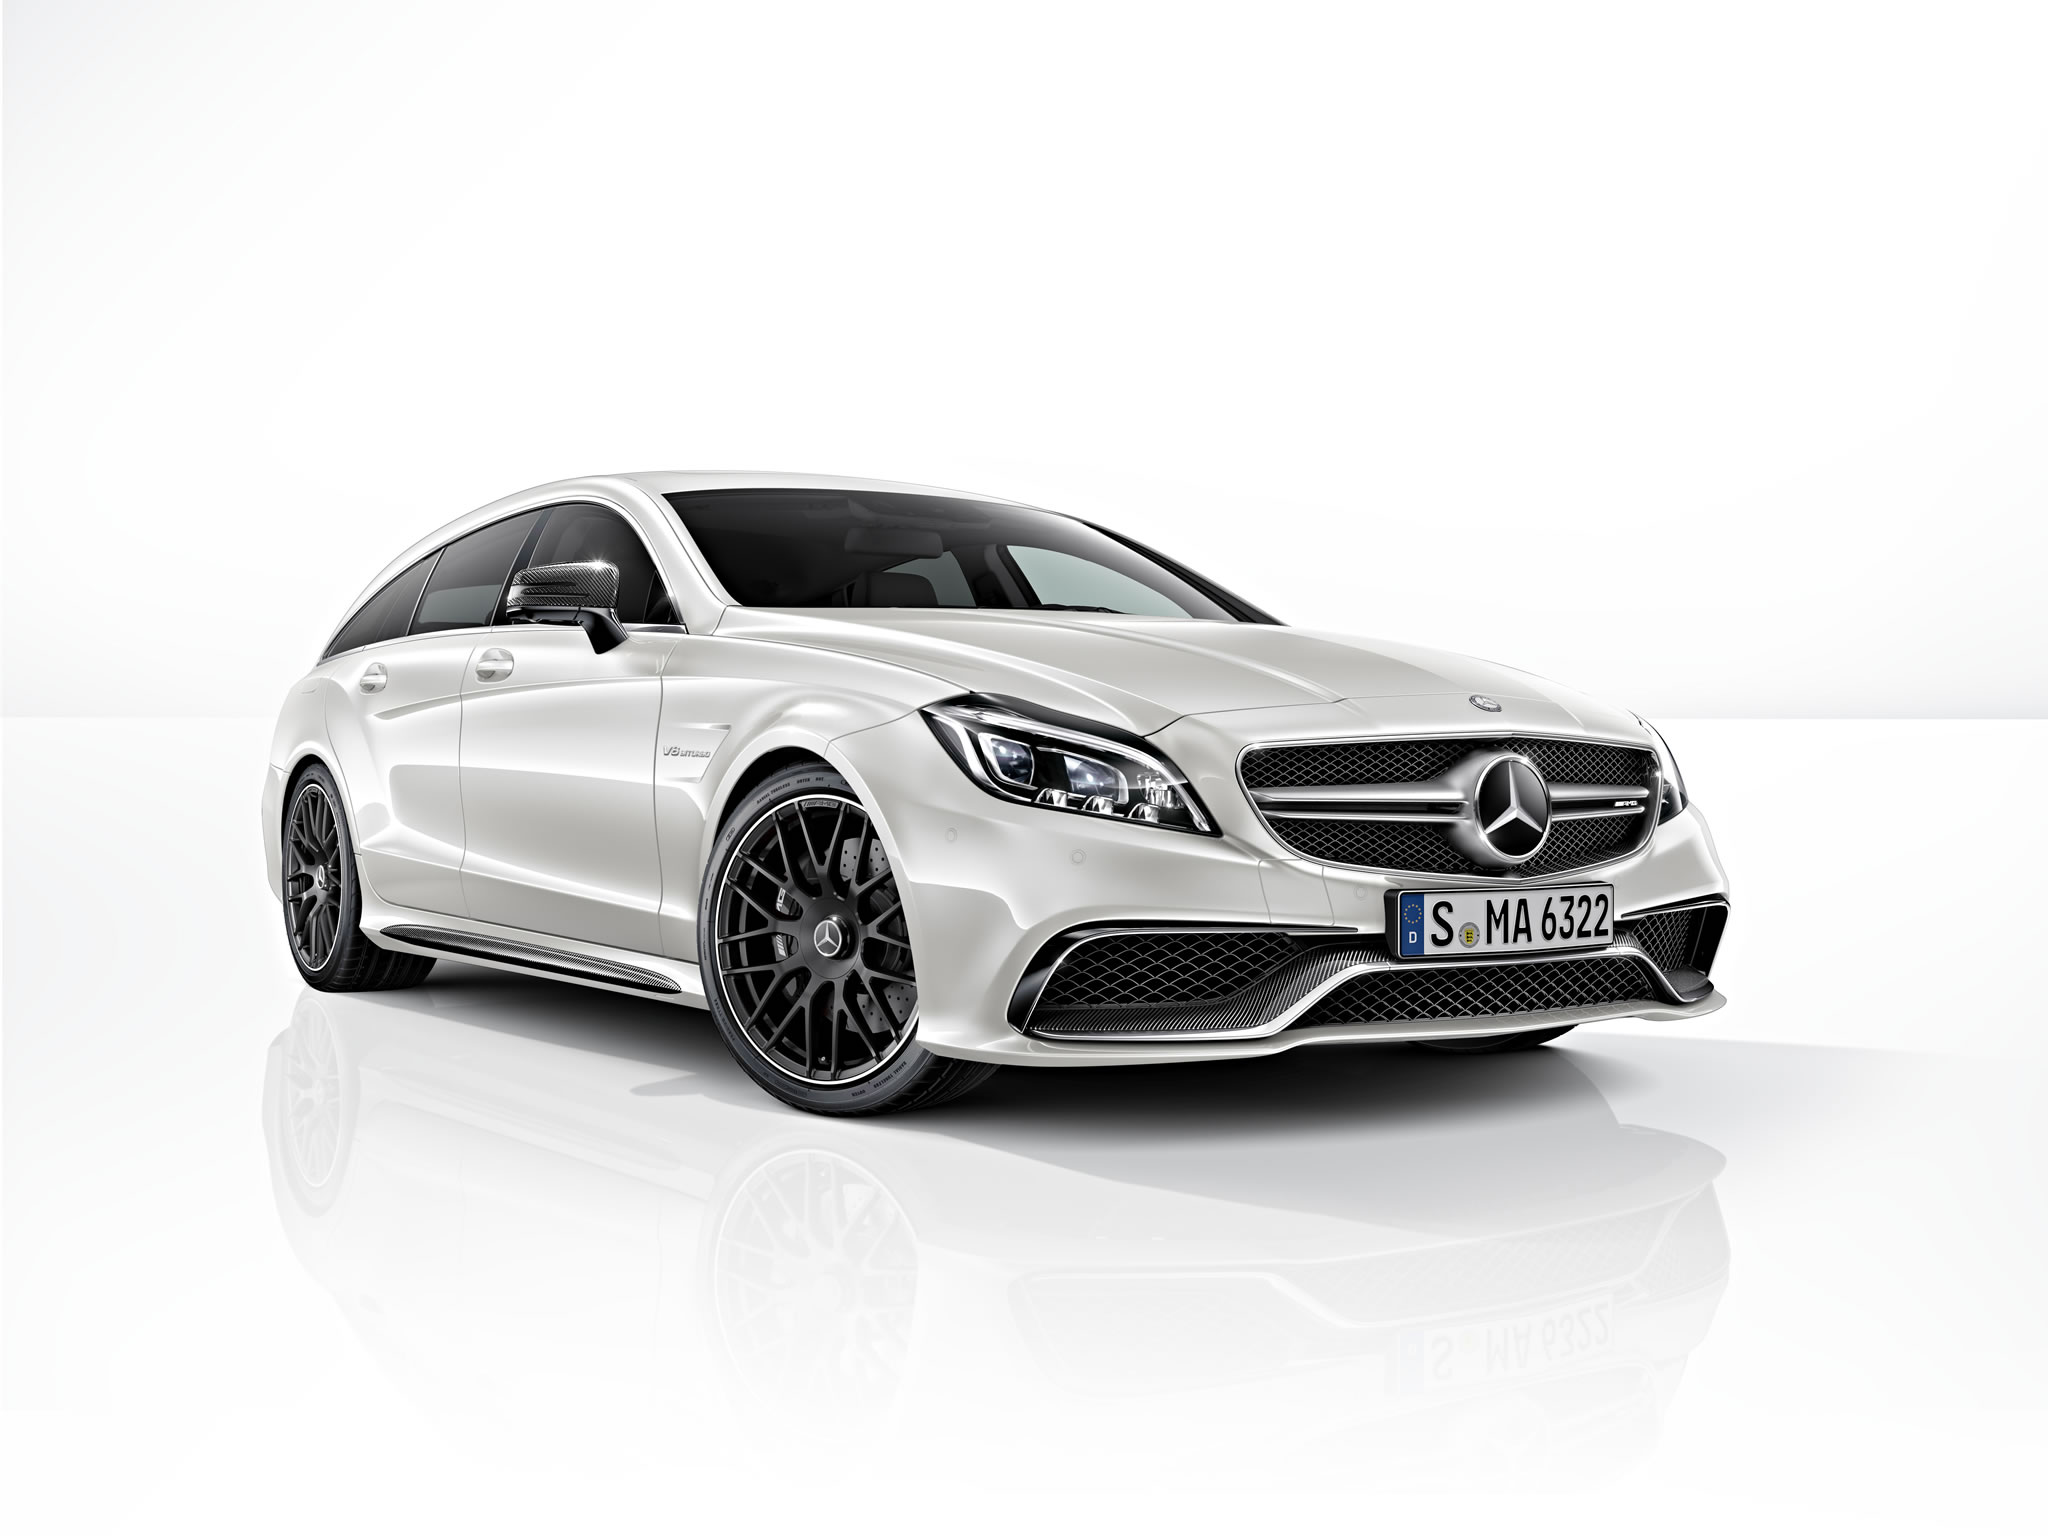 2015 mercedes benz cls63 amg s model shooting brake for Mercedes benz cls wagon